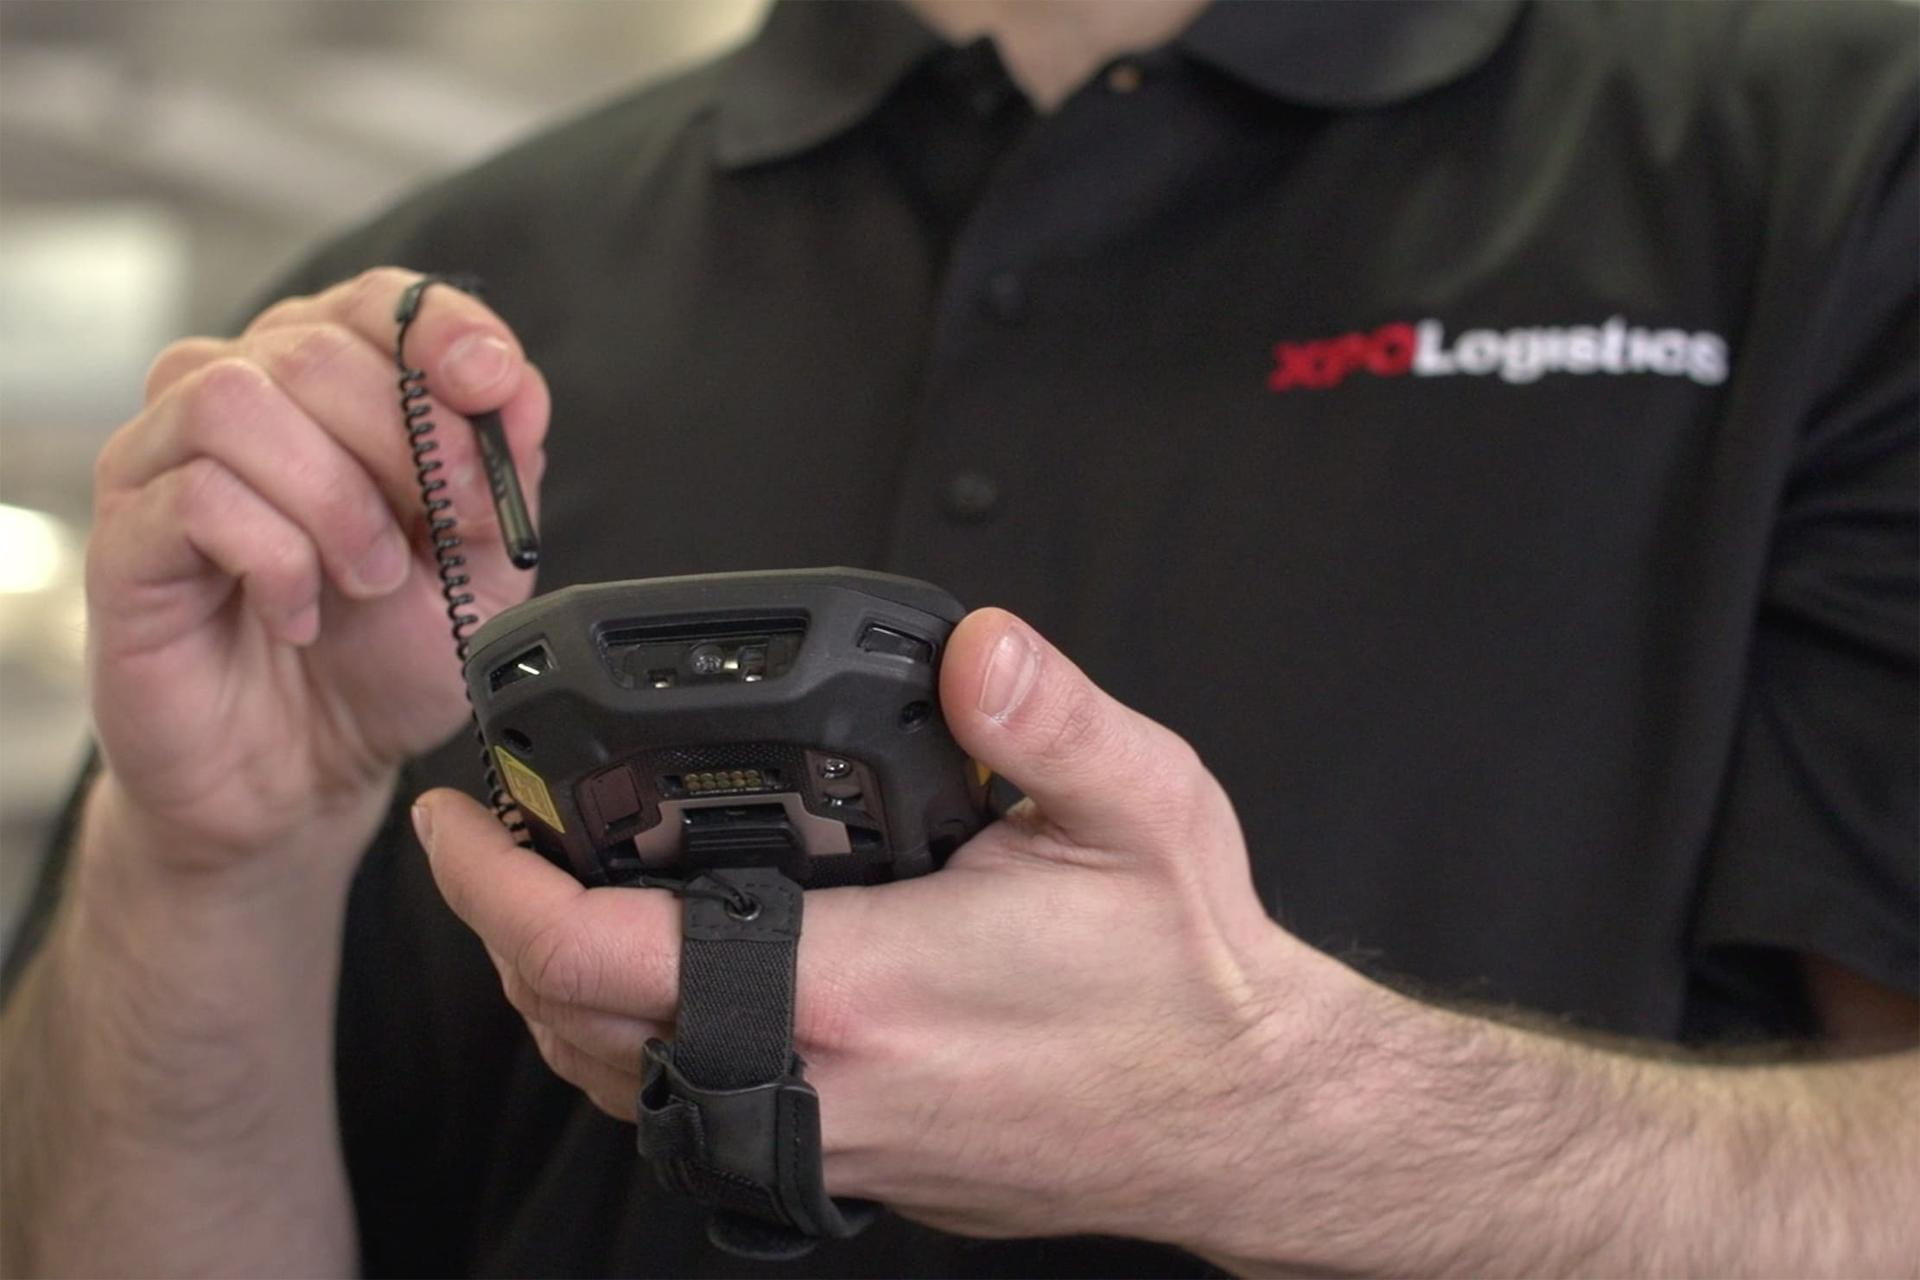 XPO LTL Driver with a handheld device